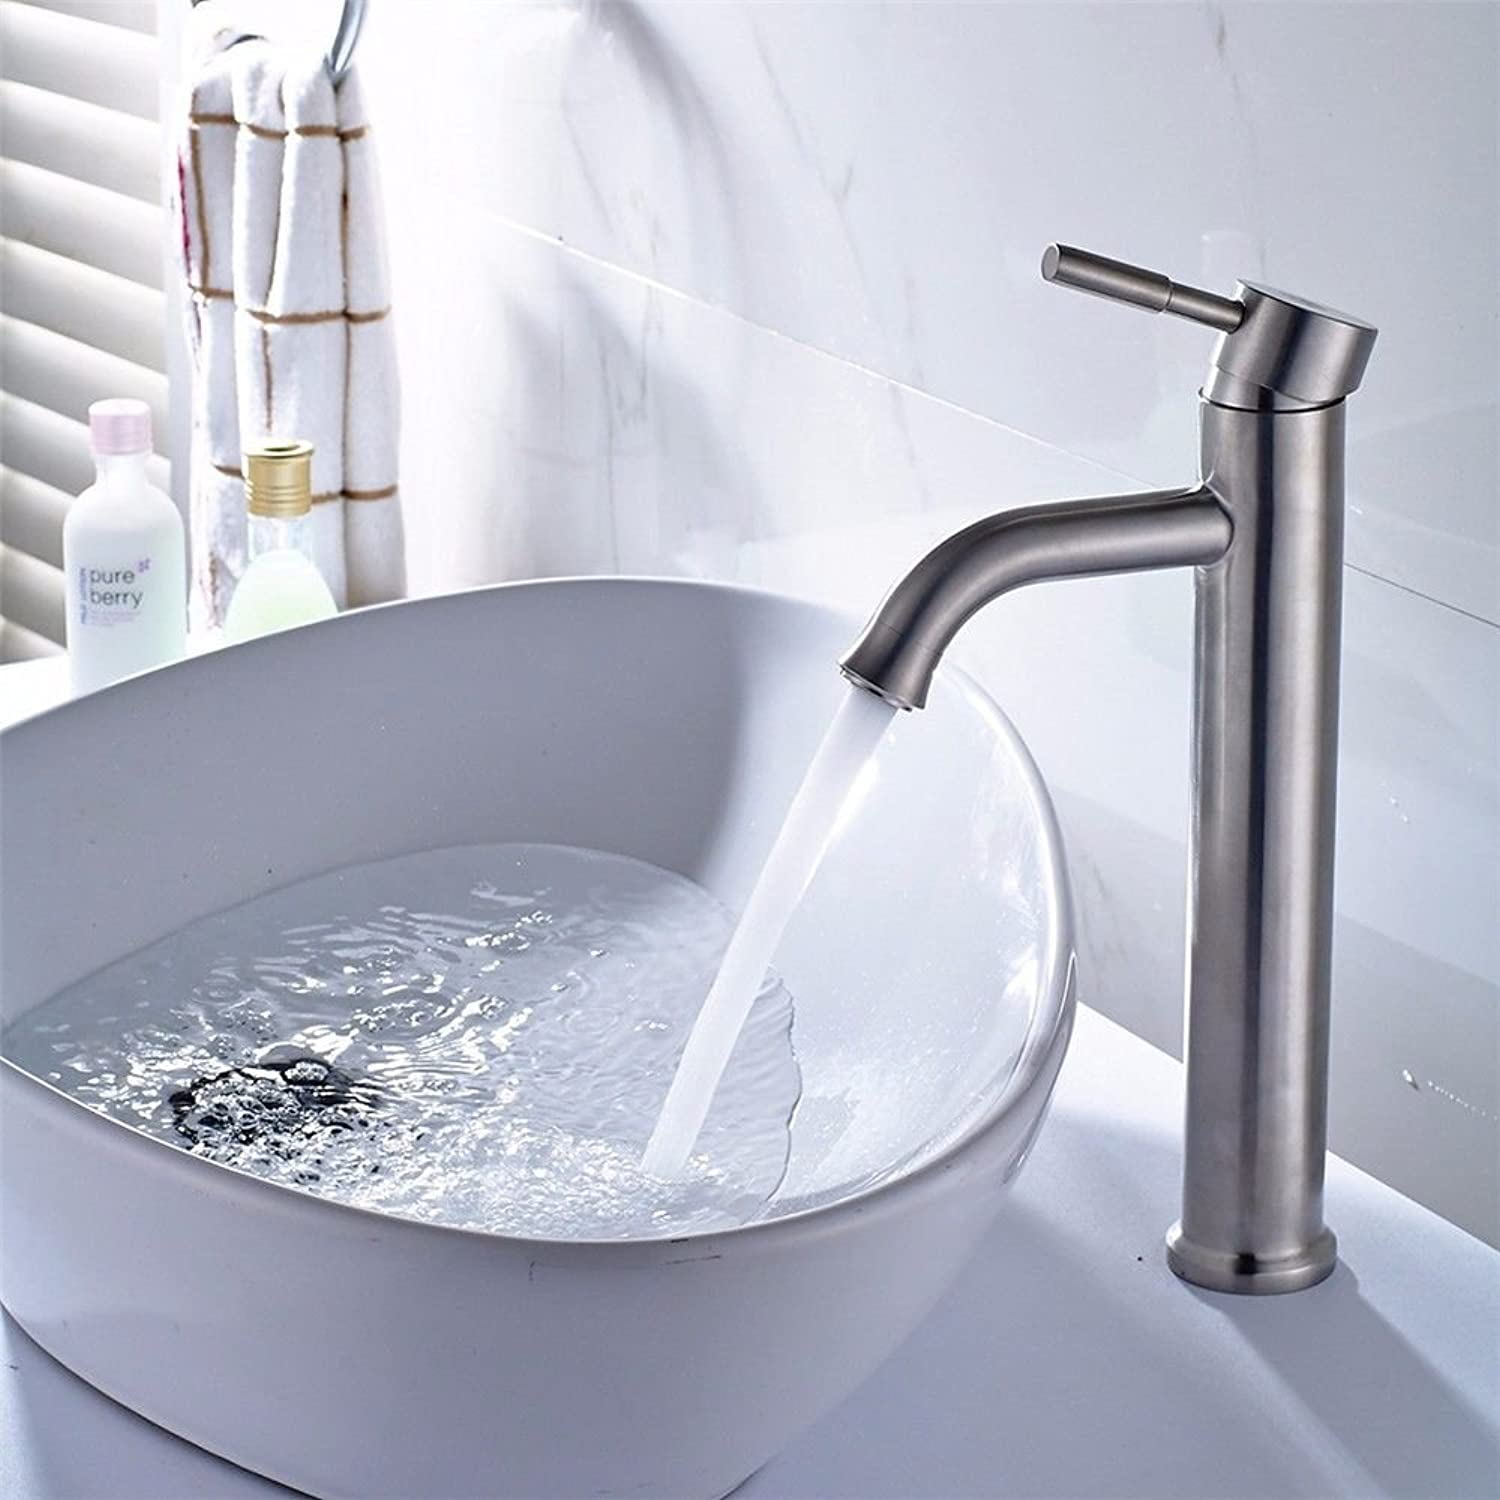 NewBorn Faucet Water Taps Hot And Cold Water 304 Brushed Stainless Steel Bathroomwith High Surface Pots Bathroom Water Tap